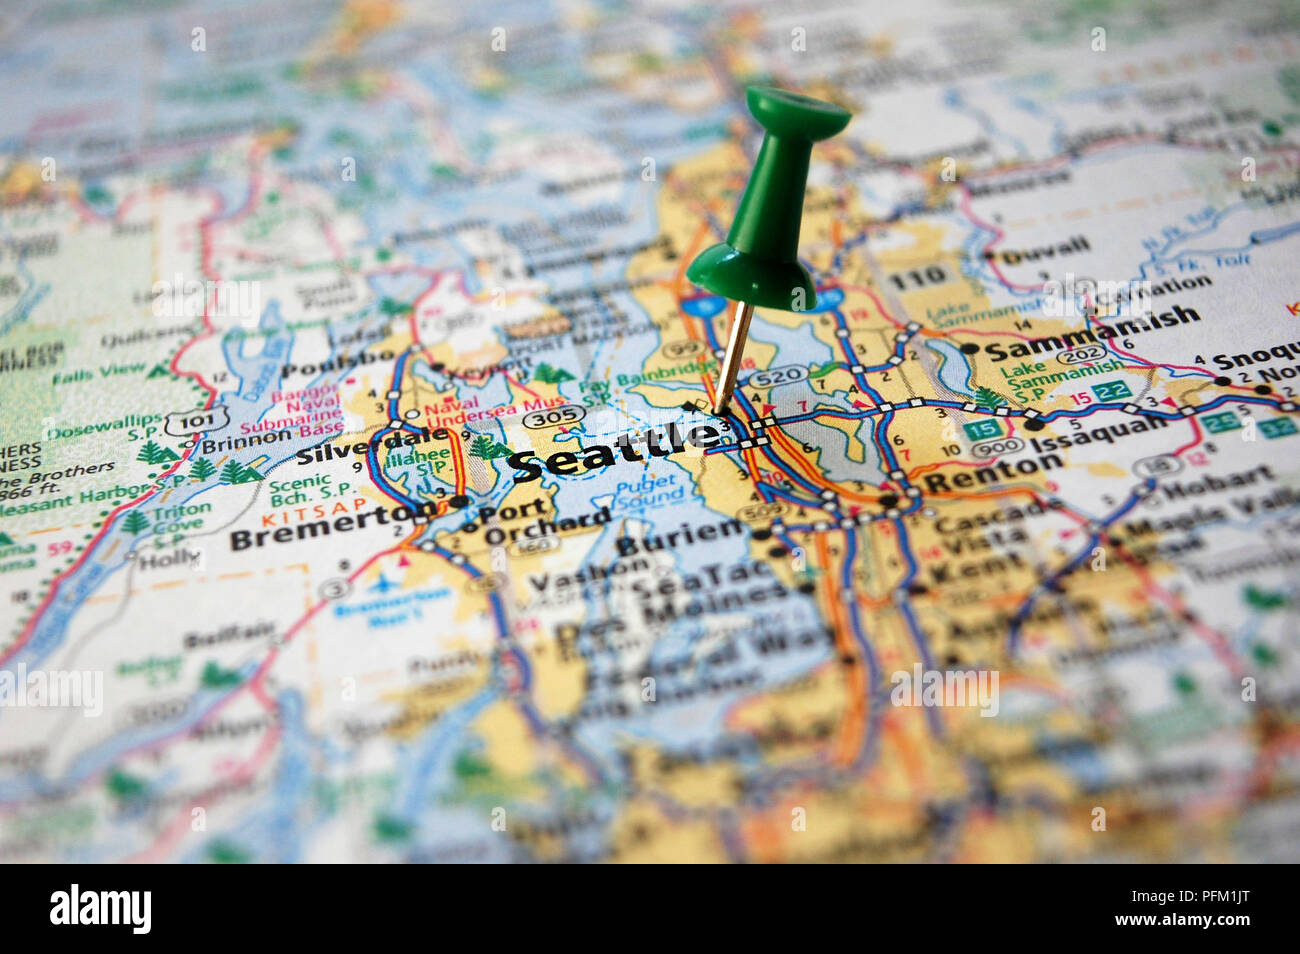 A Map Of Seattle Washington Marked With A Push Pin Stock Photo